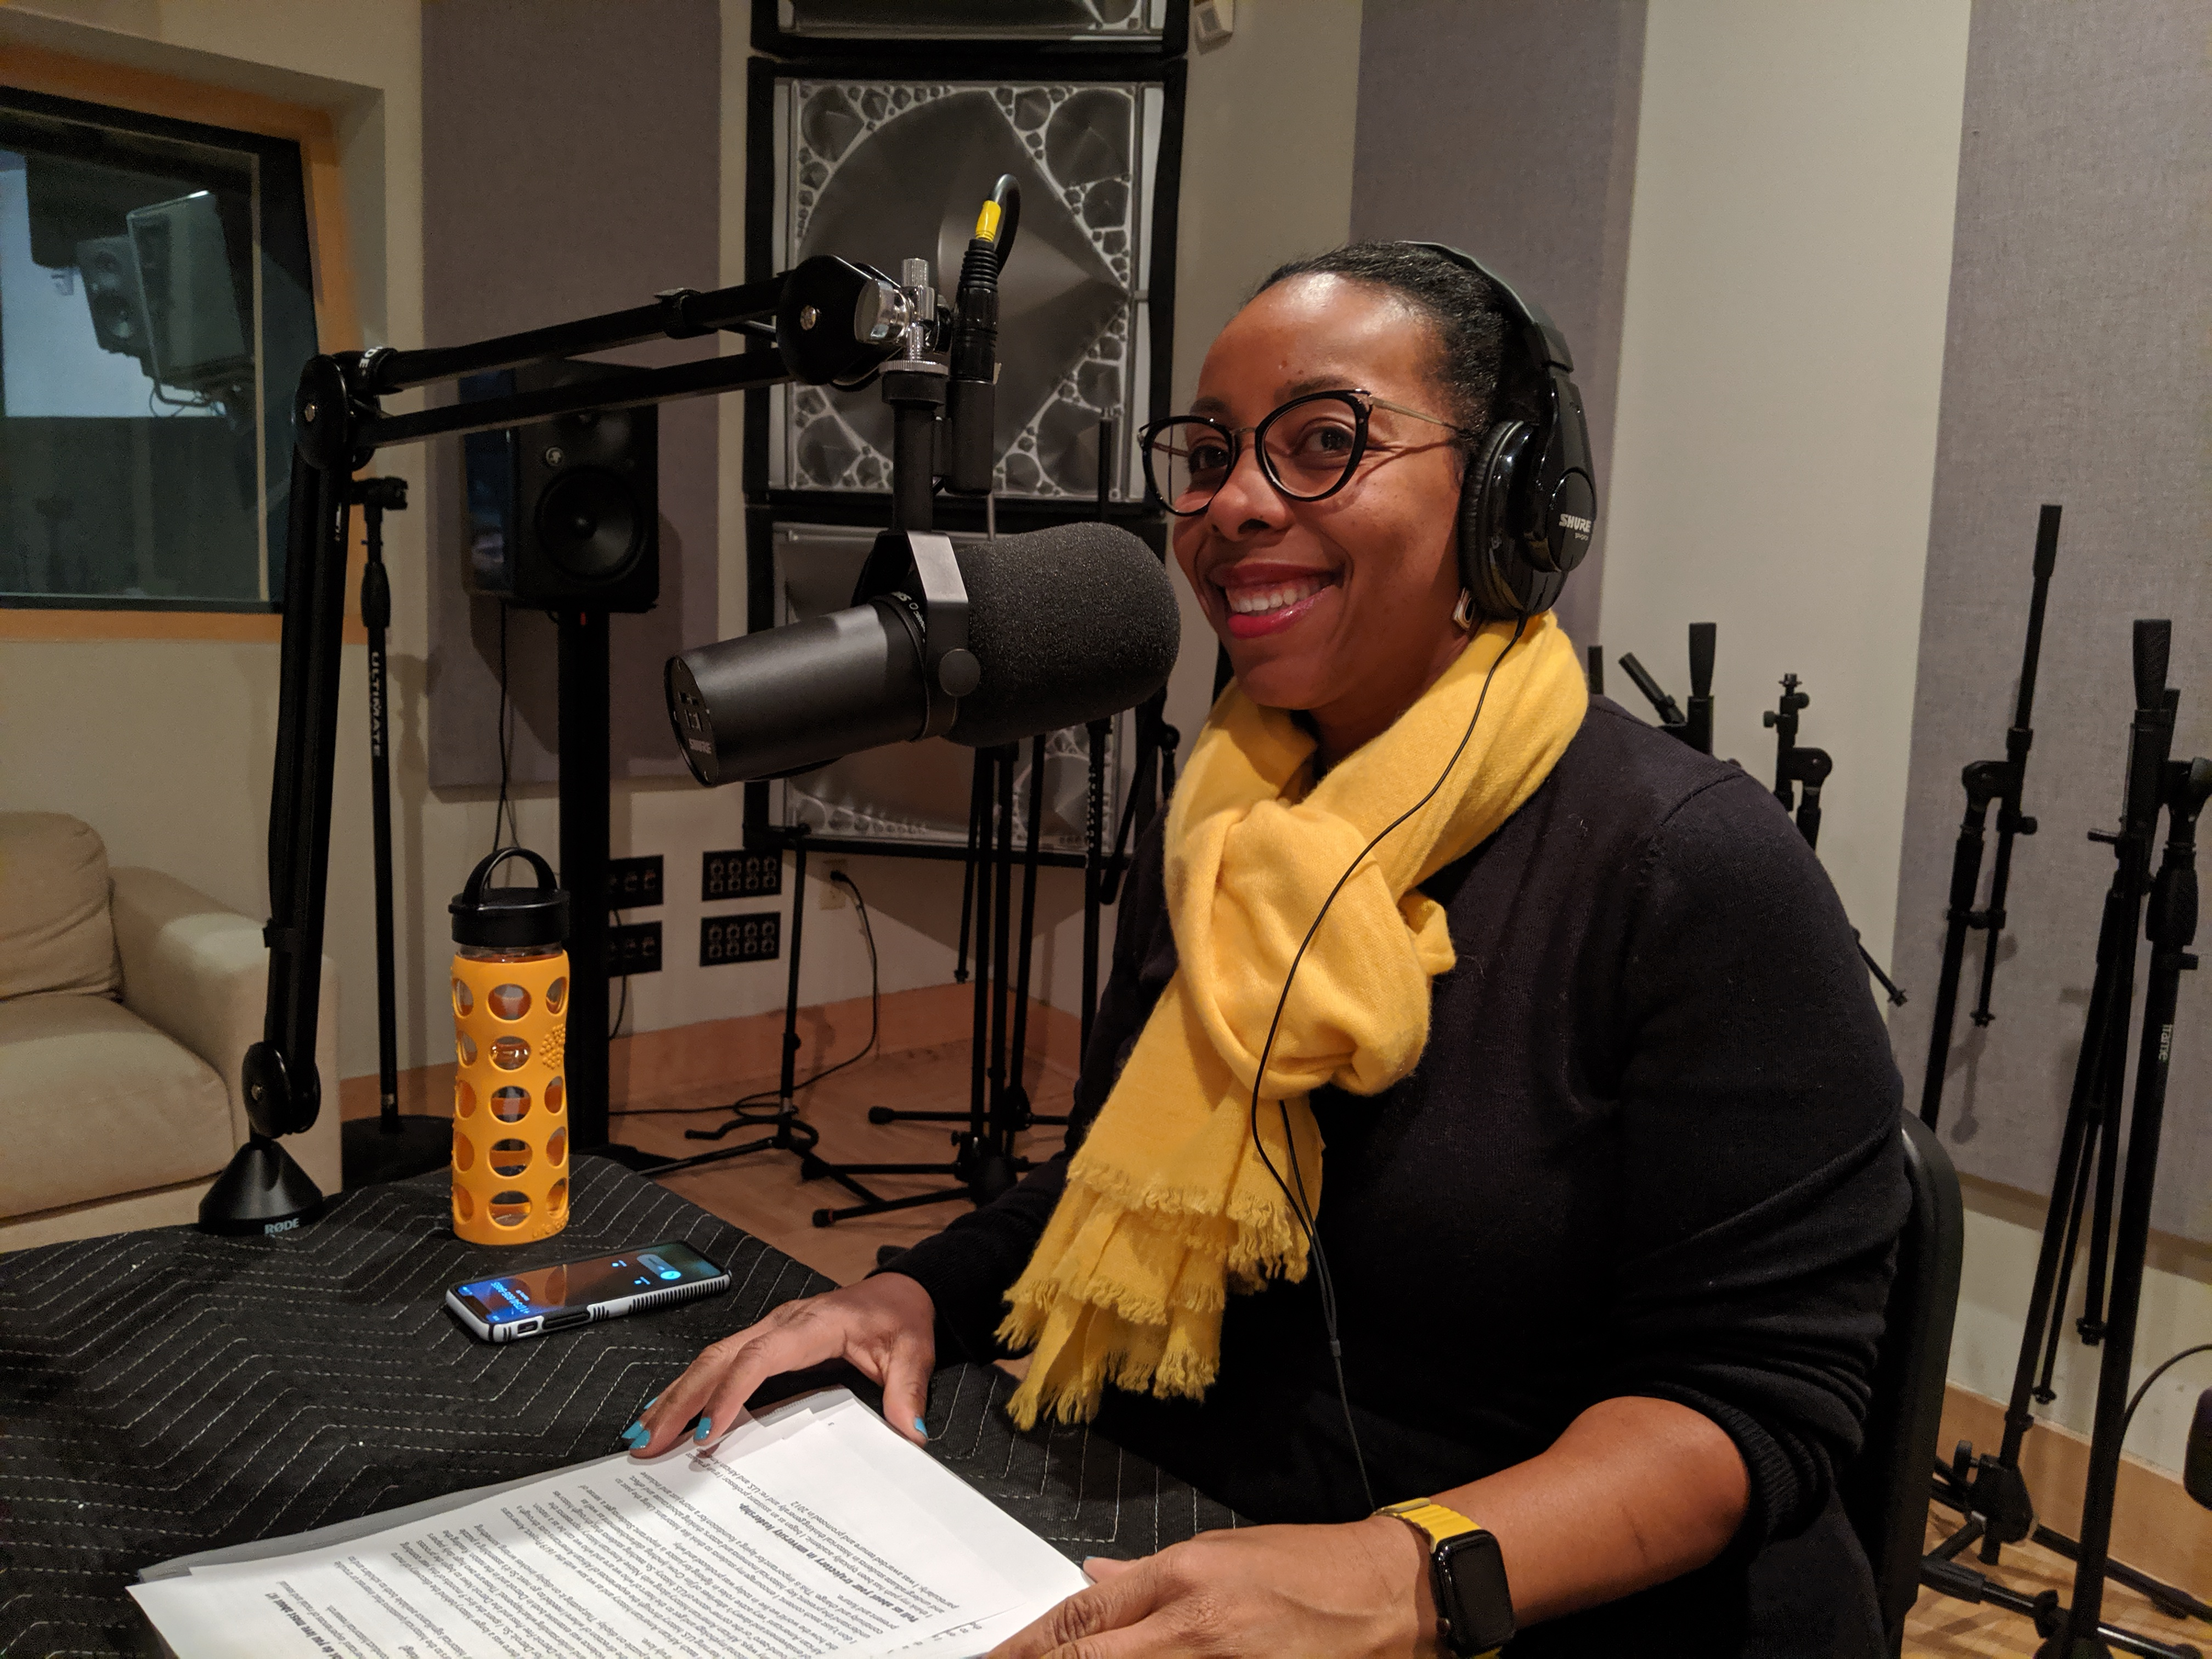 Kidada Williams in front of a microphone wearing headphones, black shirt and yellow scarf